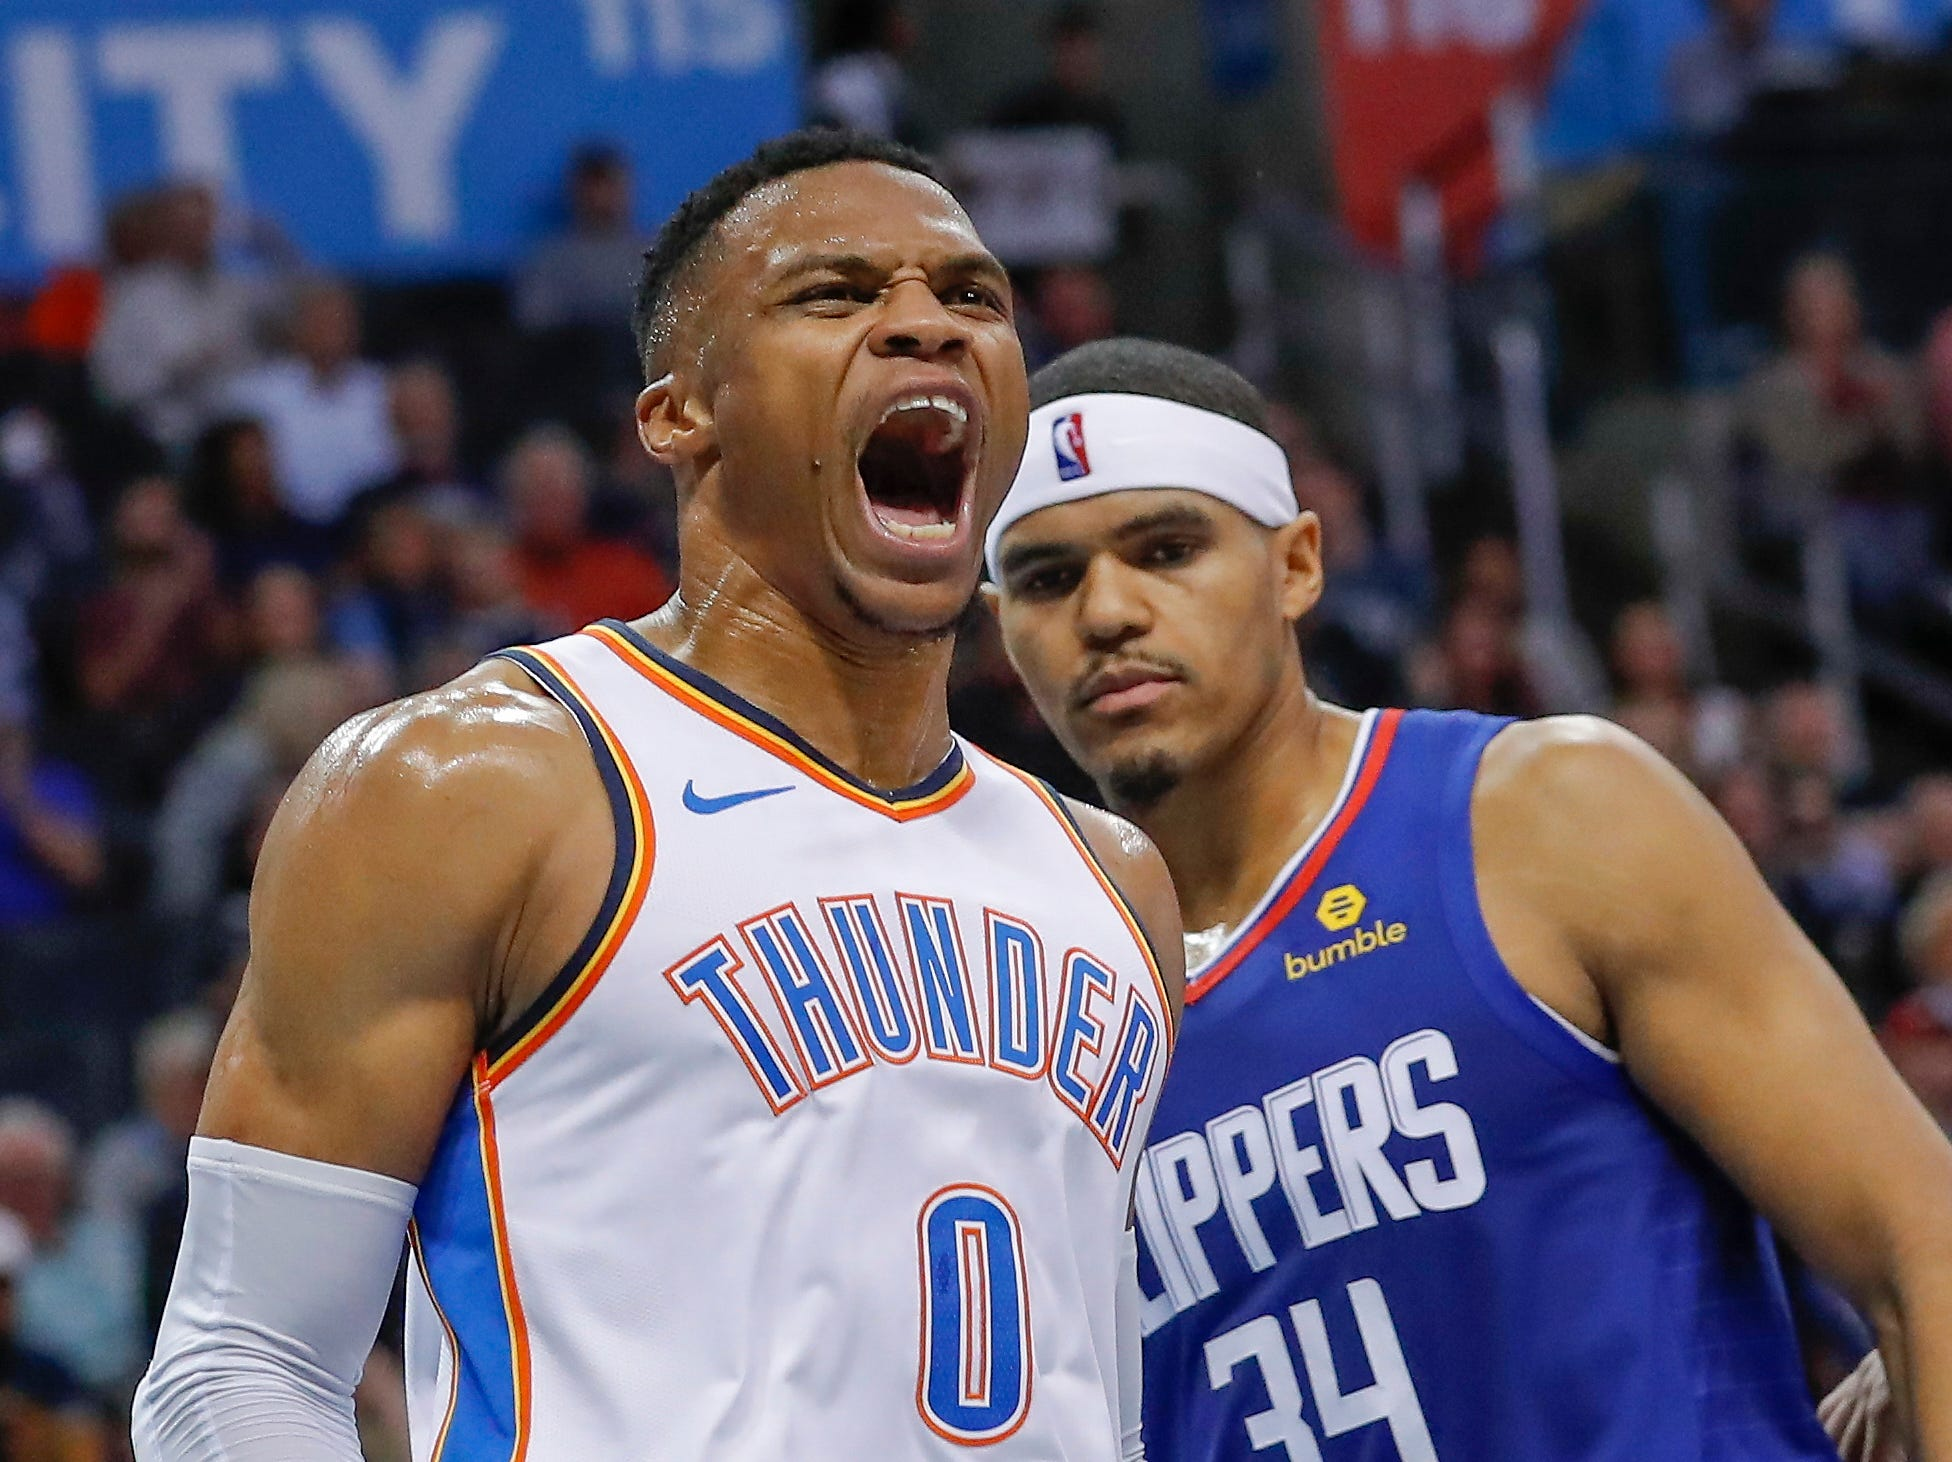 Oct. 30: Thunder guard Russell Westbrook reacts after a basket against the Clippers during the second half at Chesapeake Energy Arena.